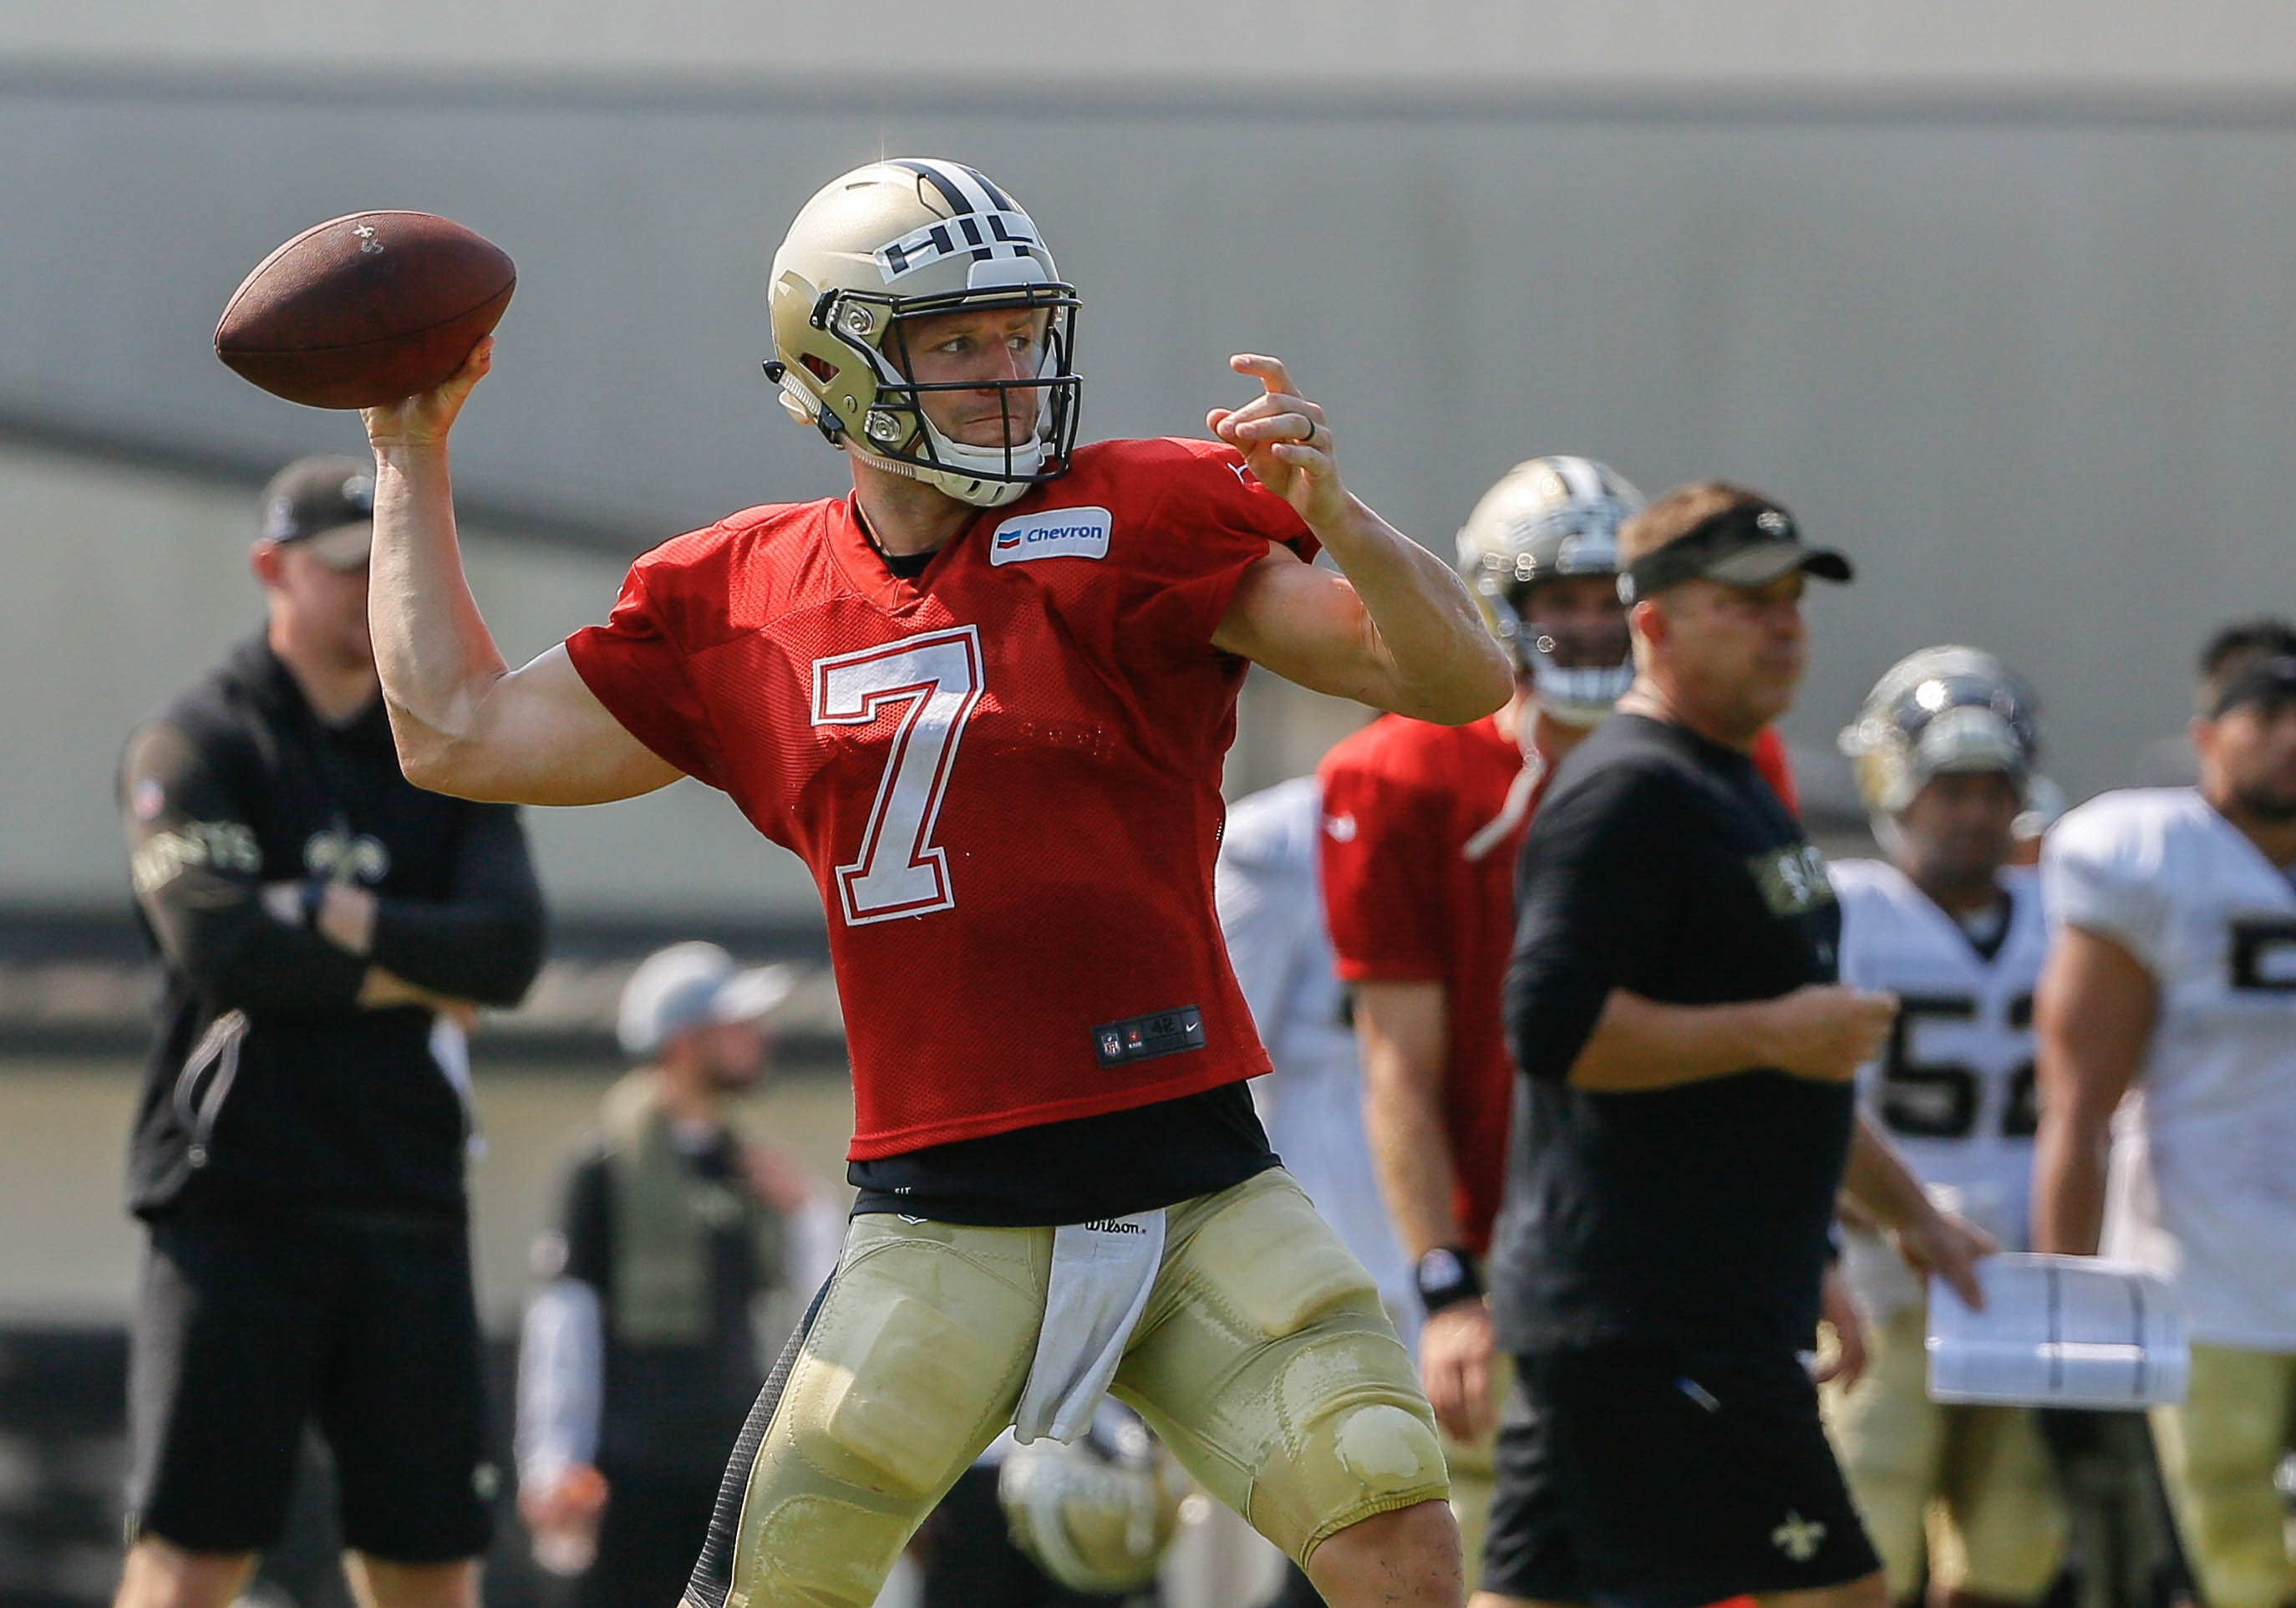 Jul 28, 2018; Metairie, LA, USA; New Orleans Saints quarterback Taysom Hill (7) during training camp at New Orleans Saints Training Facility. Mandatory Credit: Derick E. Hingle-USA TODAY Sports